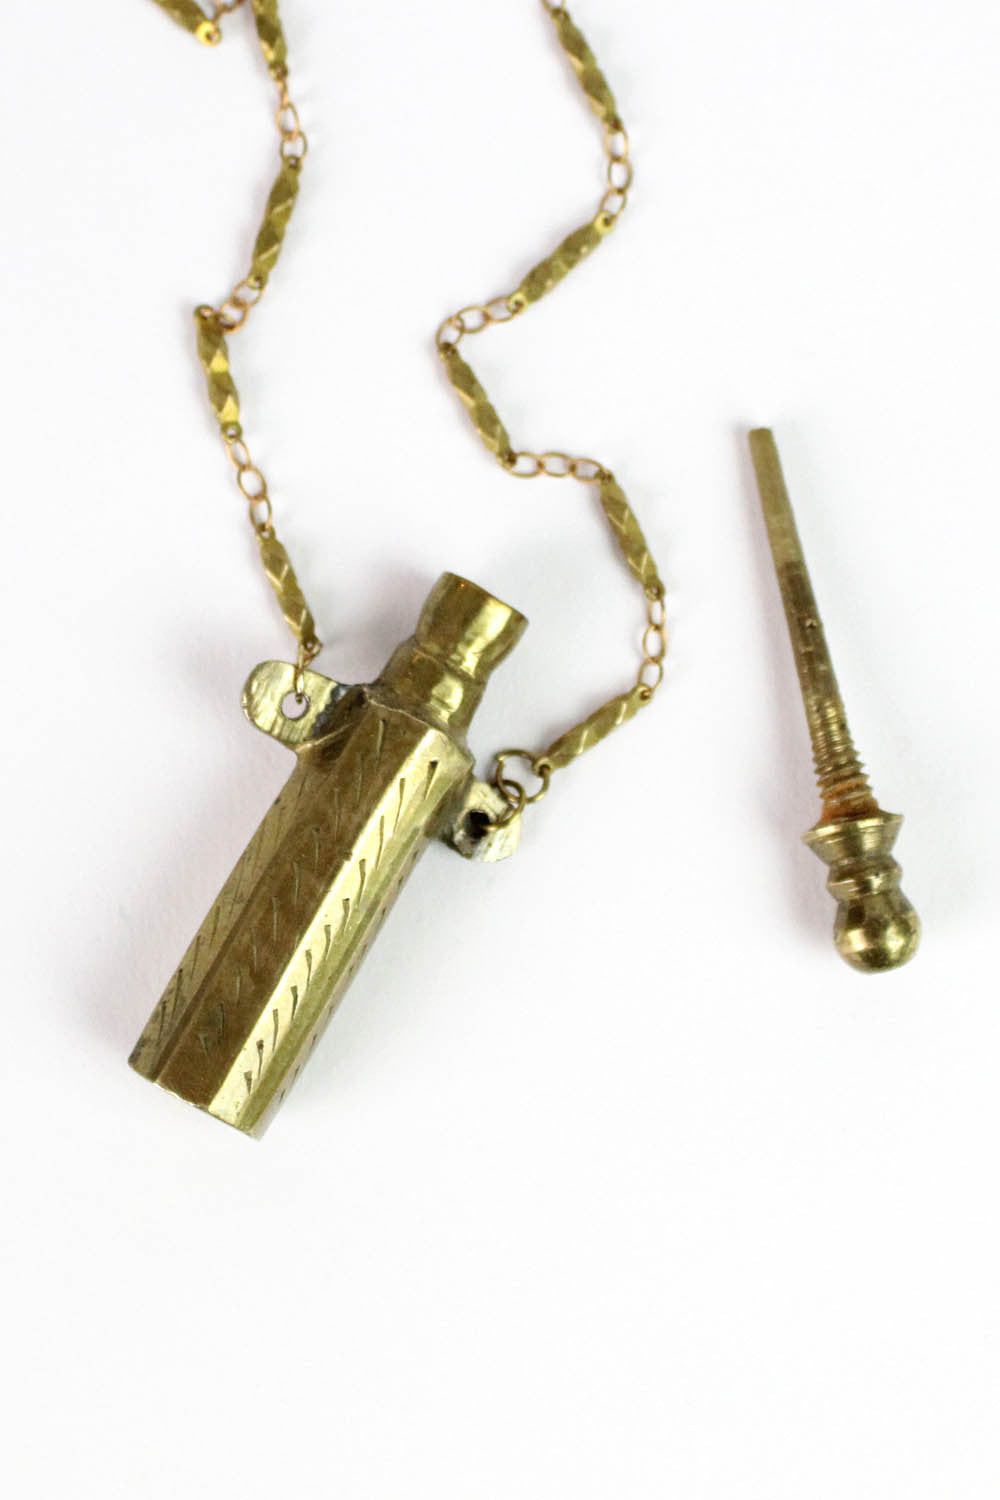 Etched Poison Bottle Necklace